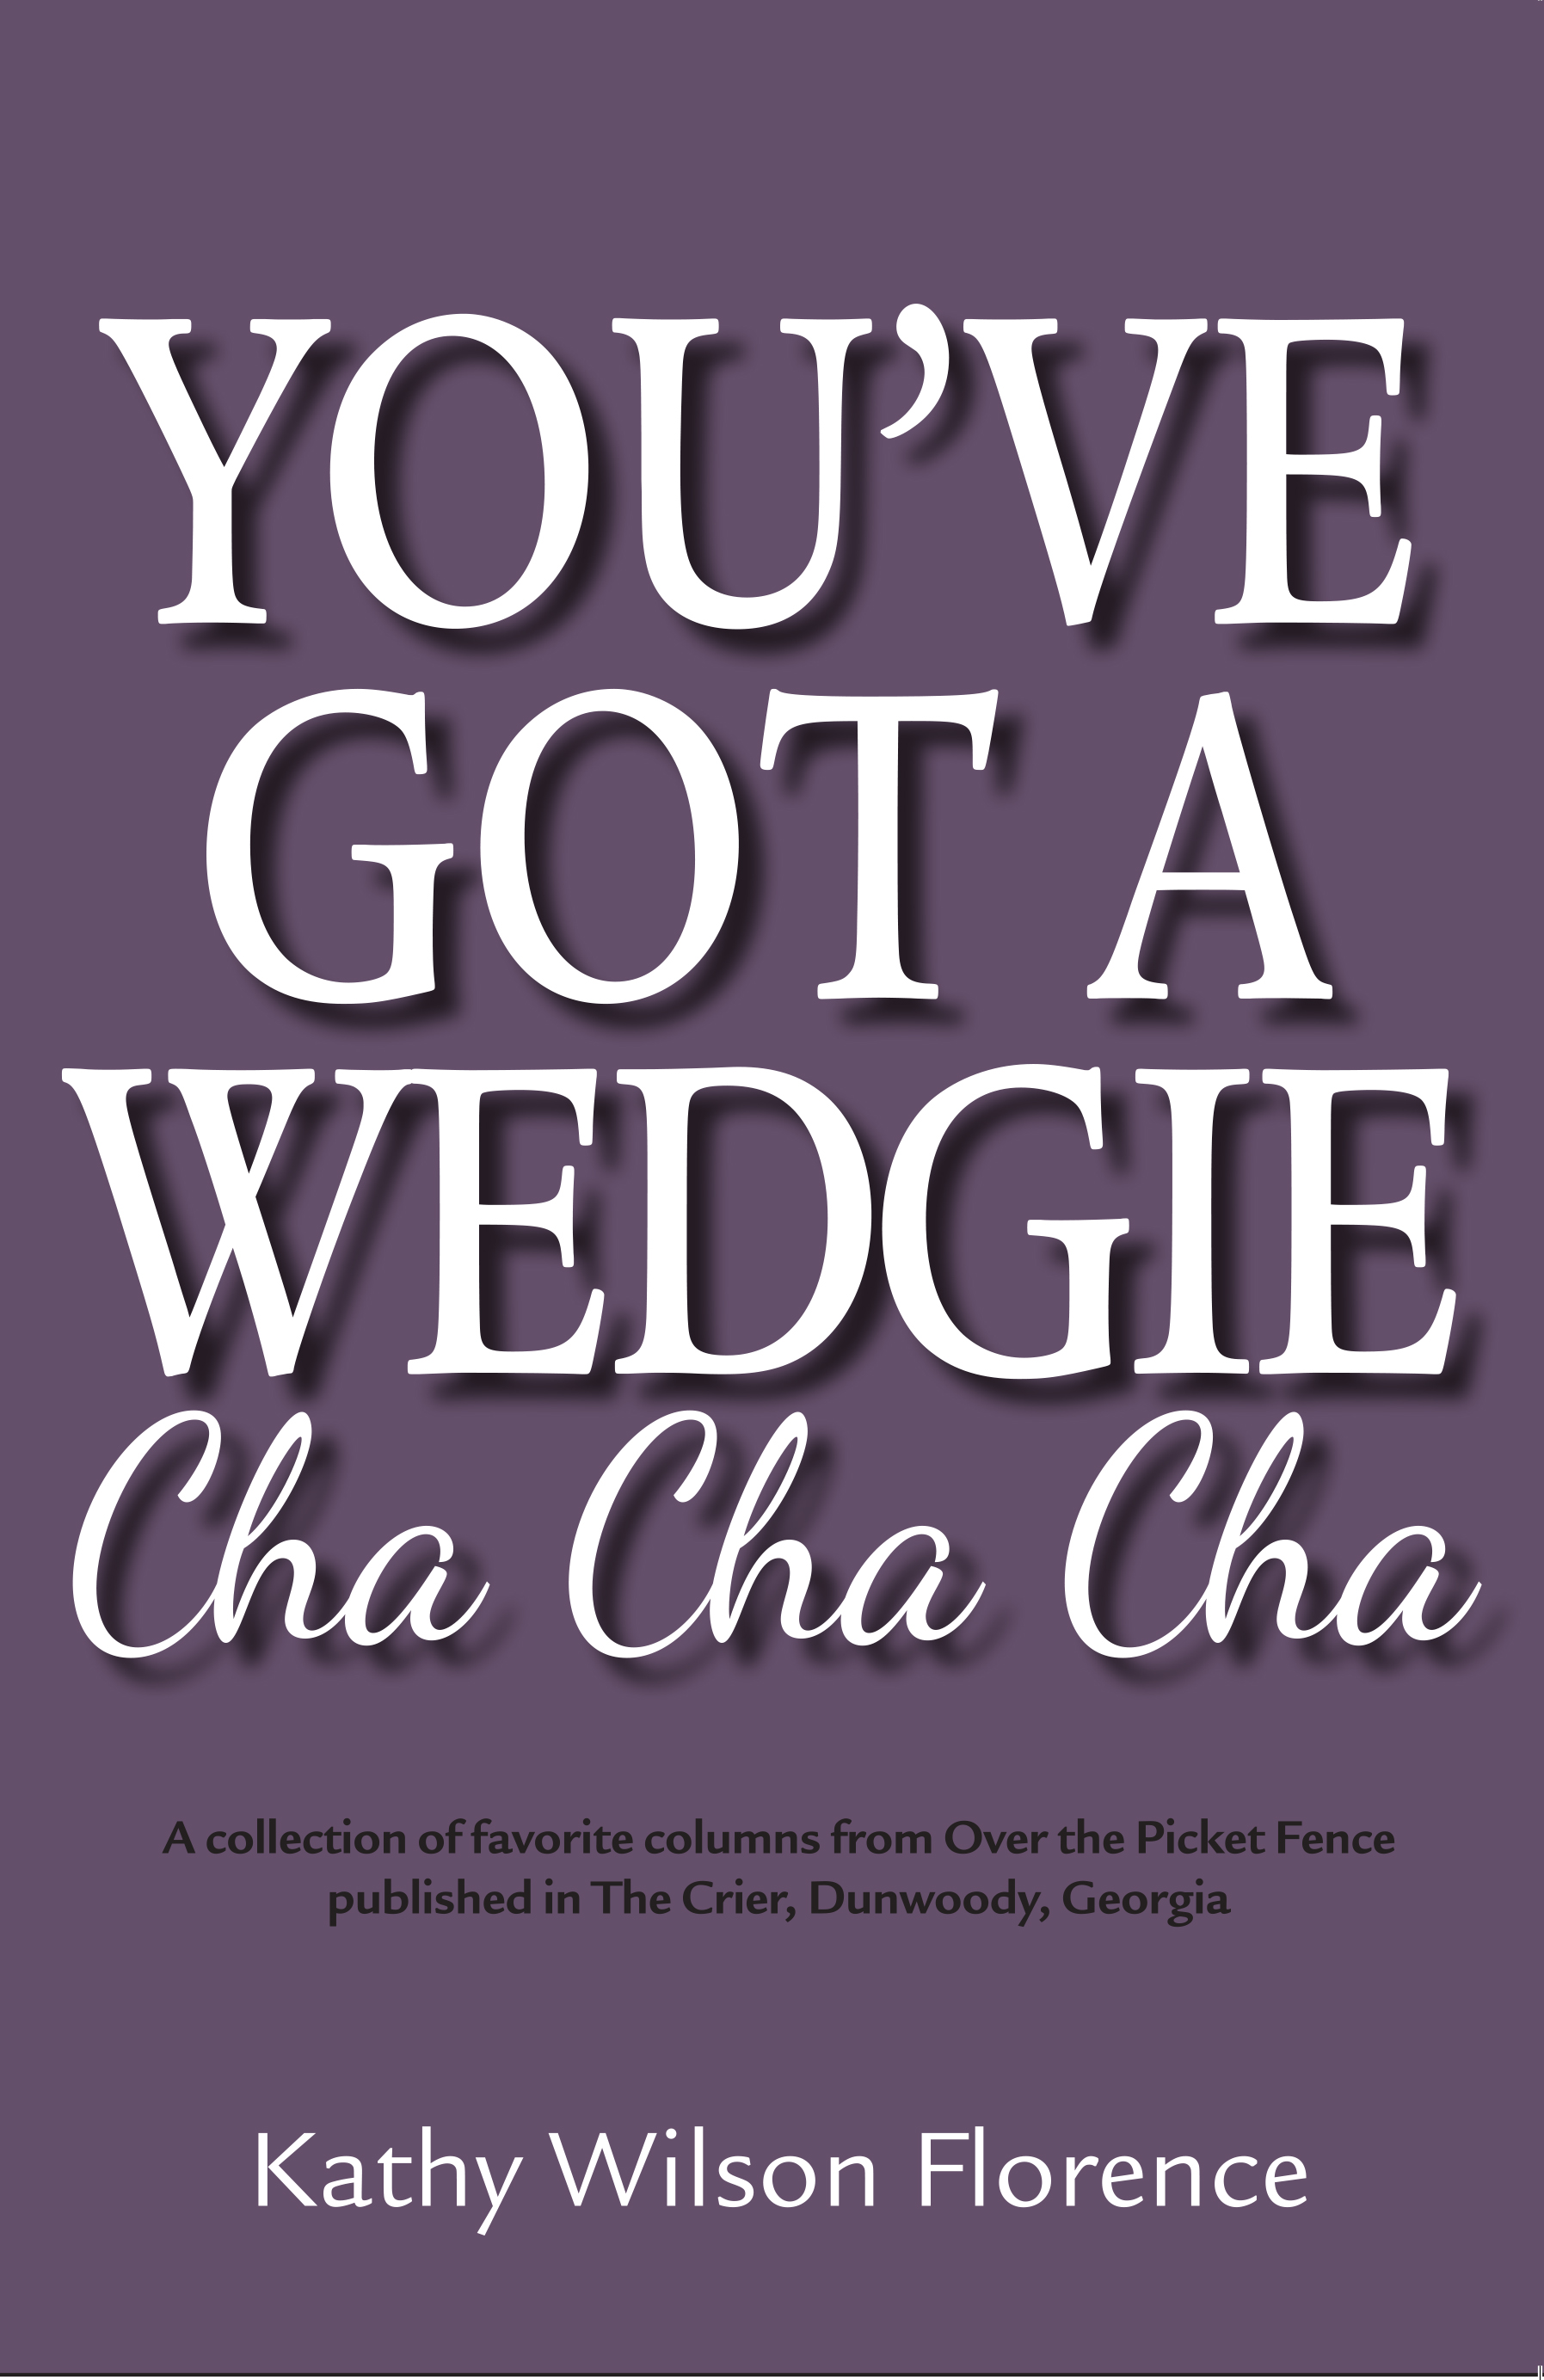 You've Got a Wedgie Cha Cha Cha